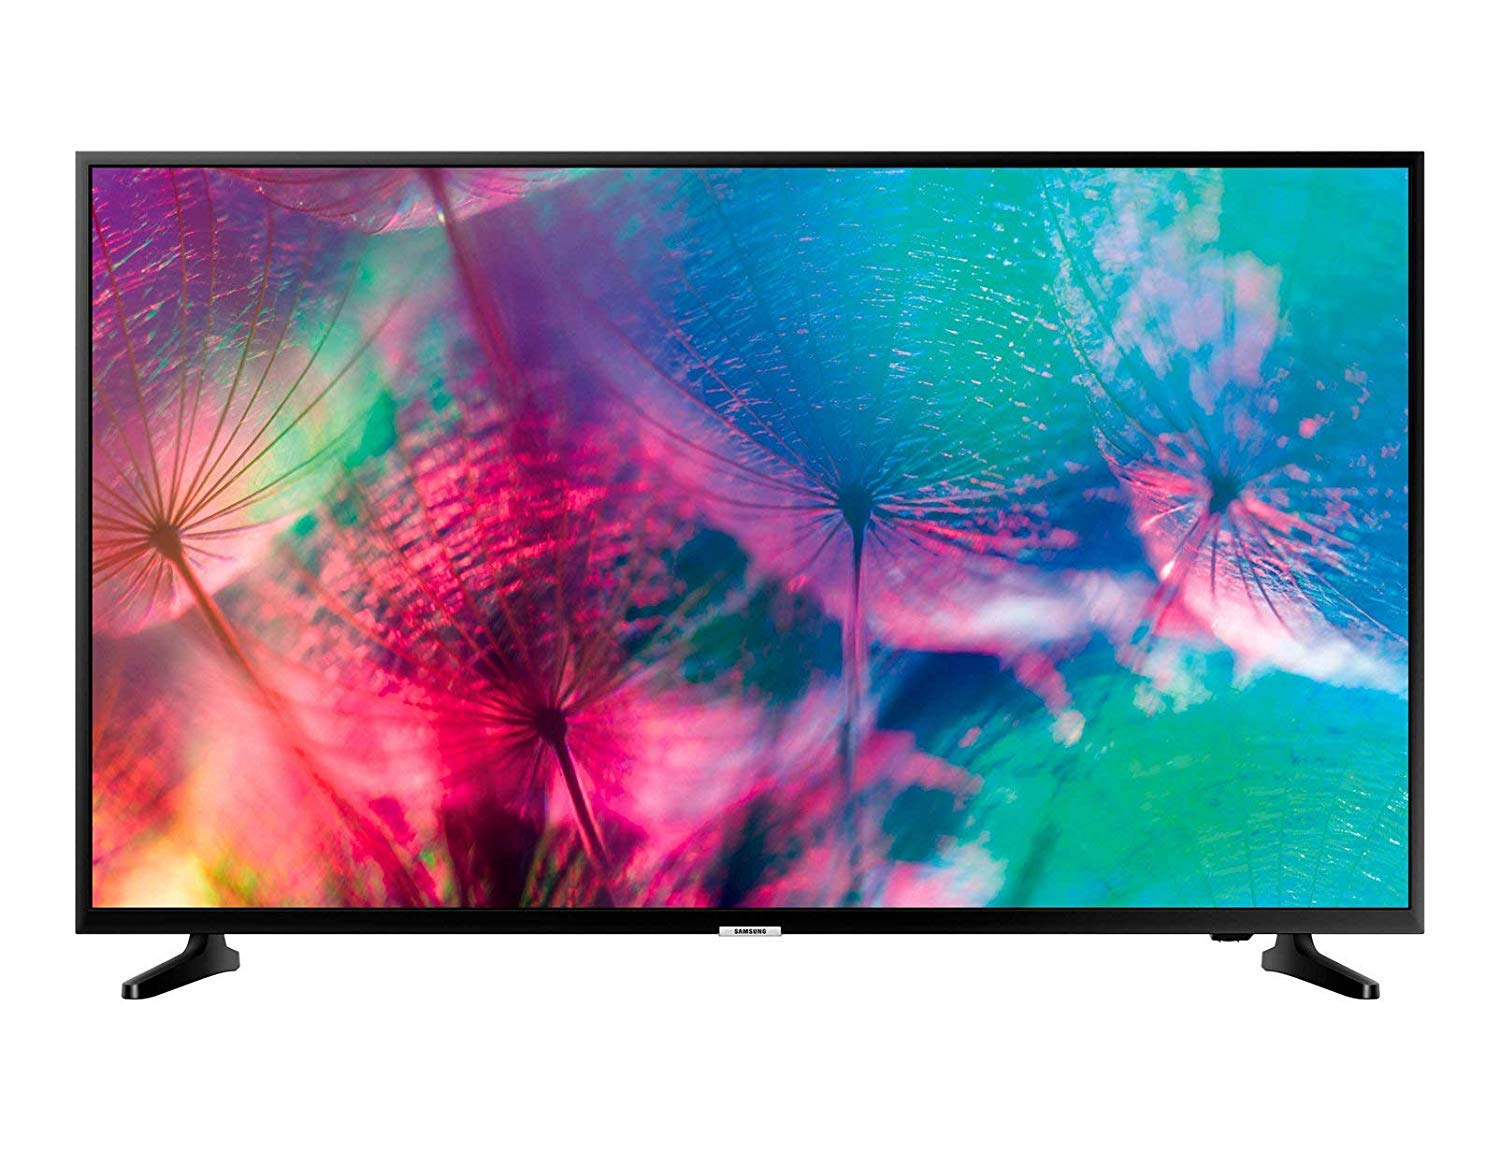 Samsung 55NU7026 - Smart TV 4K UHD de 55